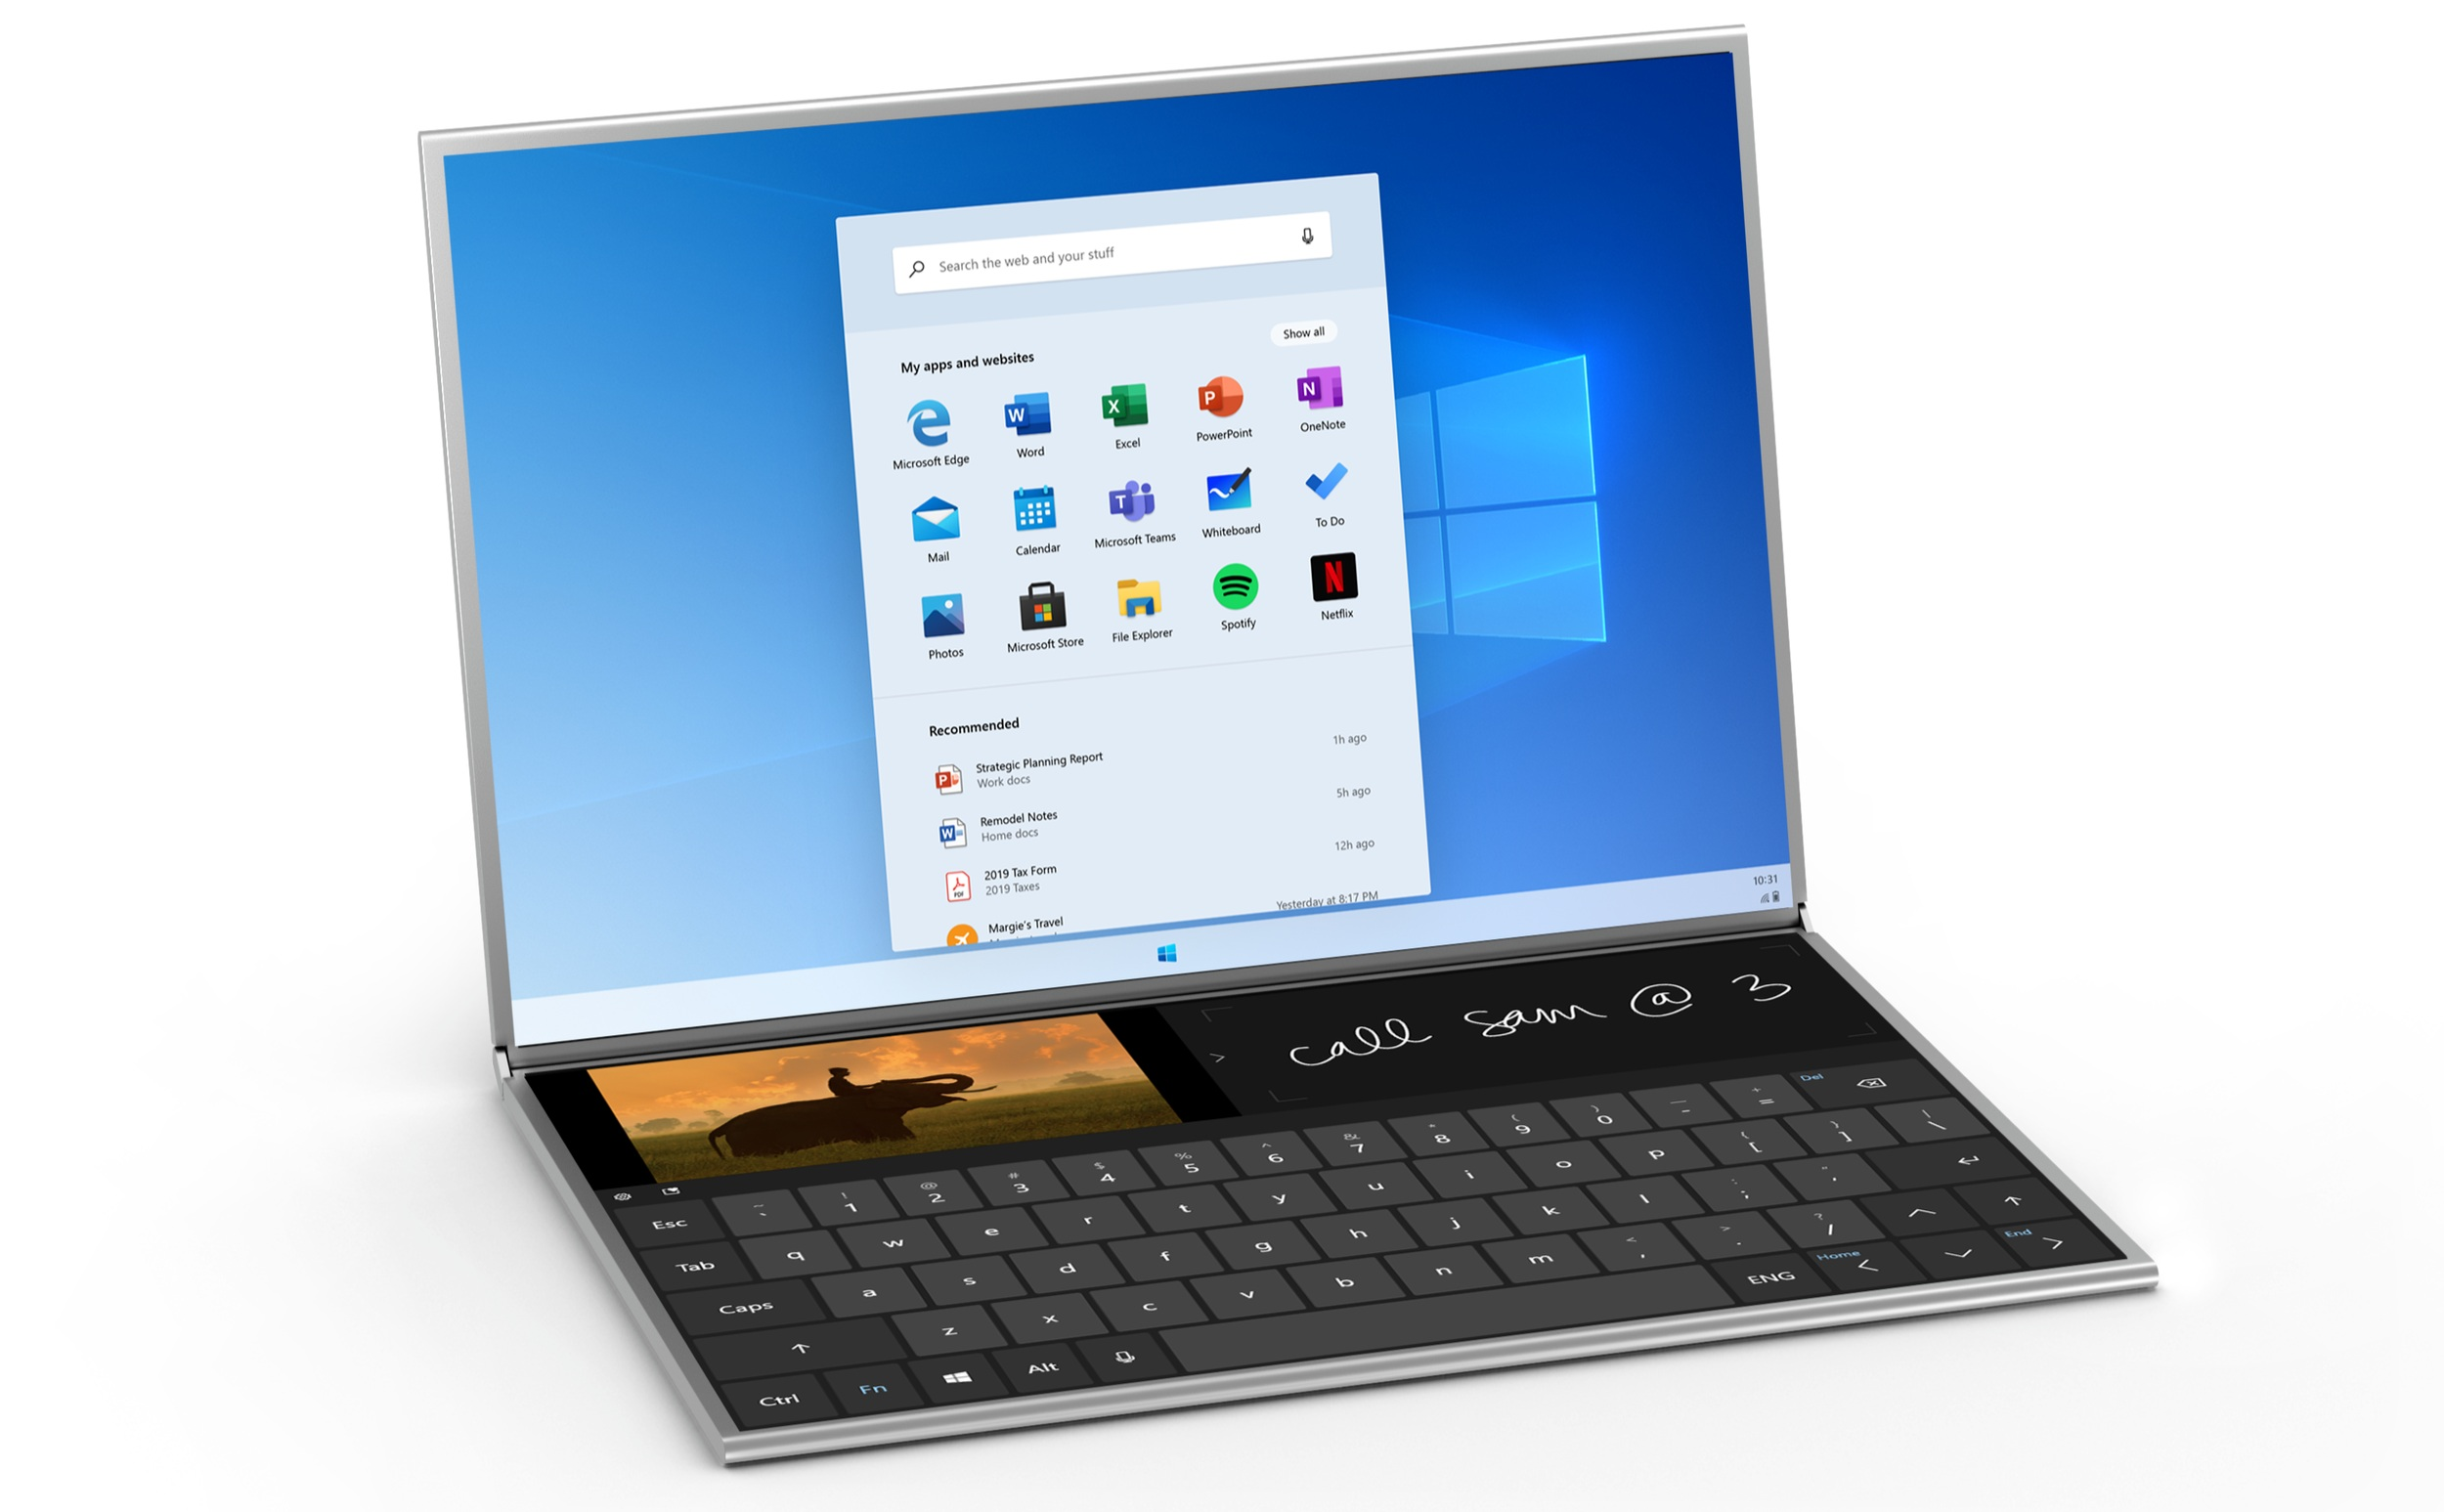 The physical keyboard leaves an impractical strip of the second screen visible.